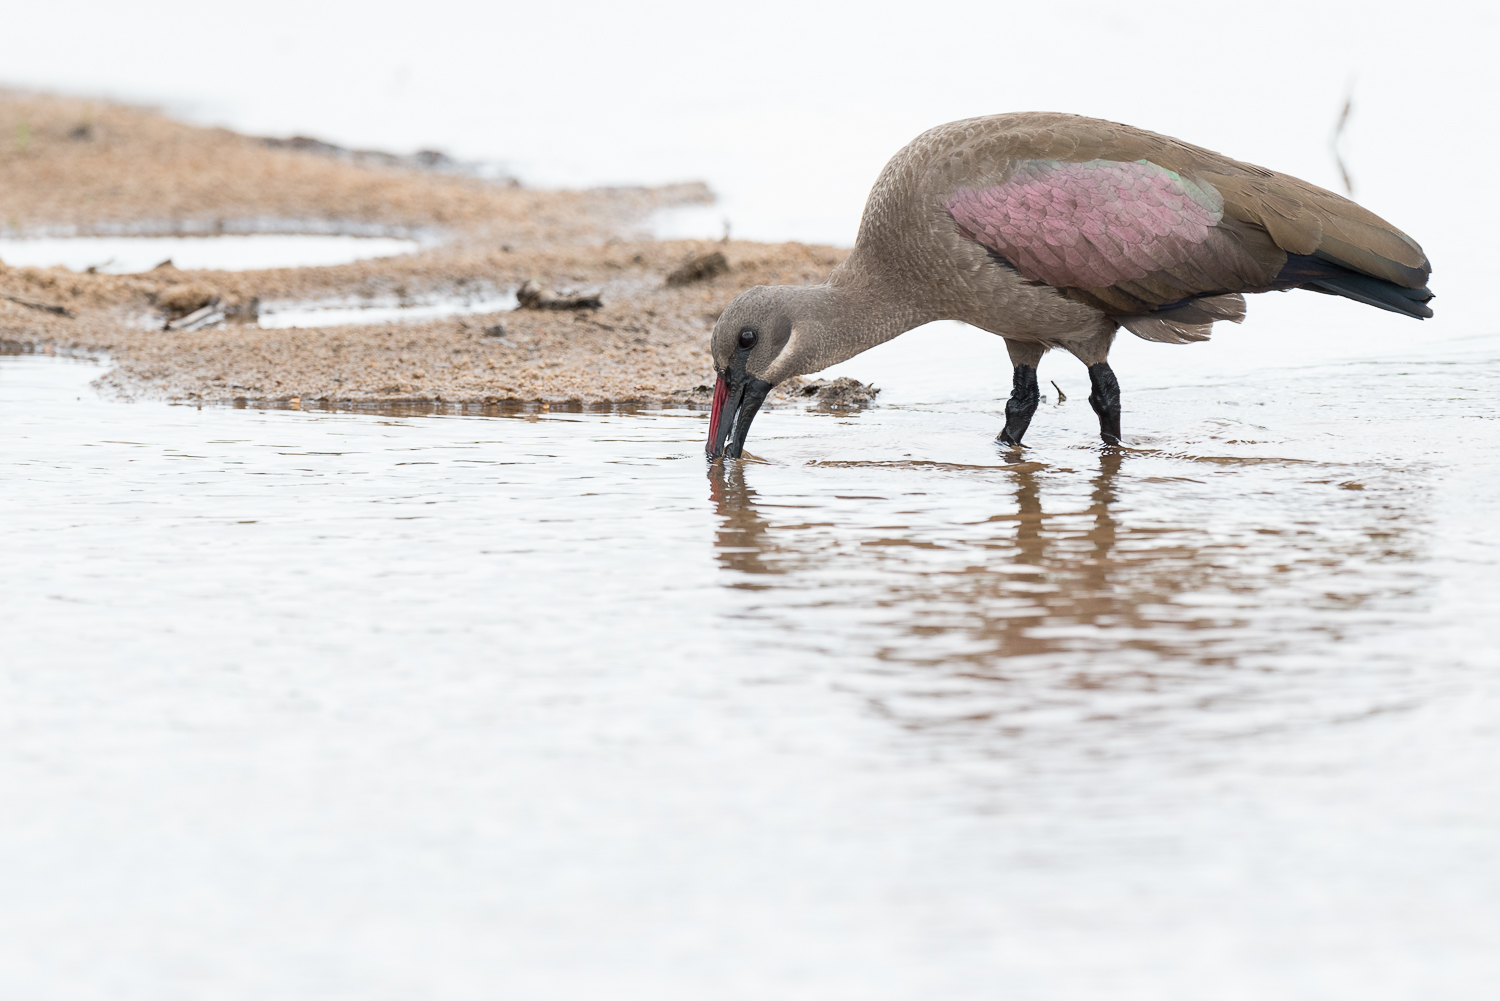 The often overlooked hadeda ibis sifts through the sand river in search of a meal.